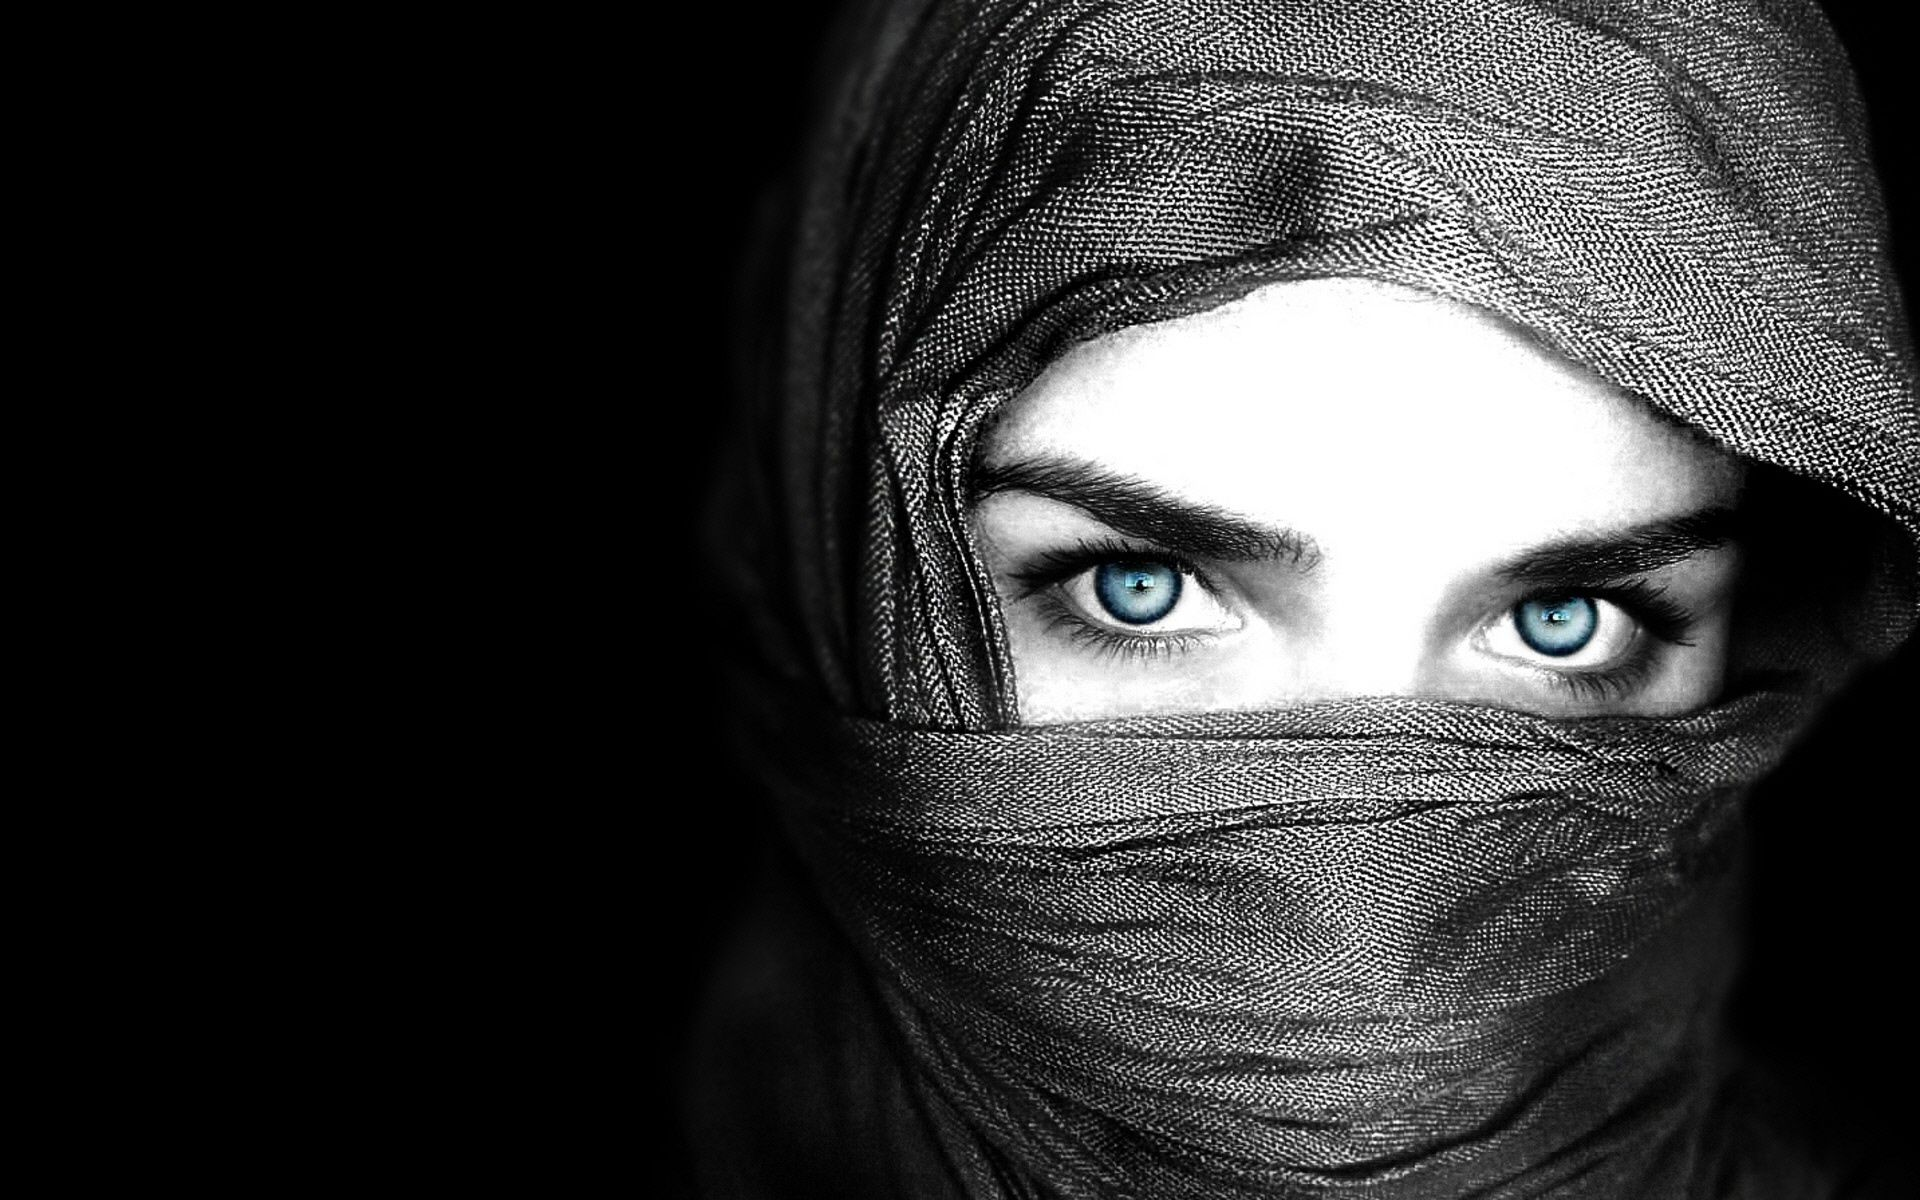 Arab Woman Wallpaper